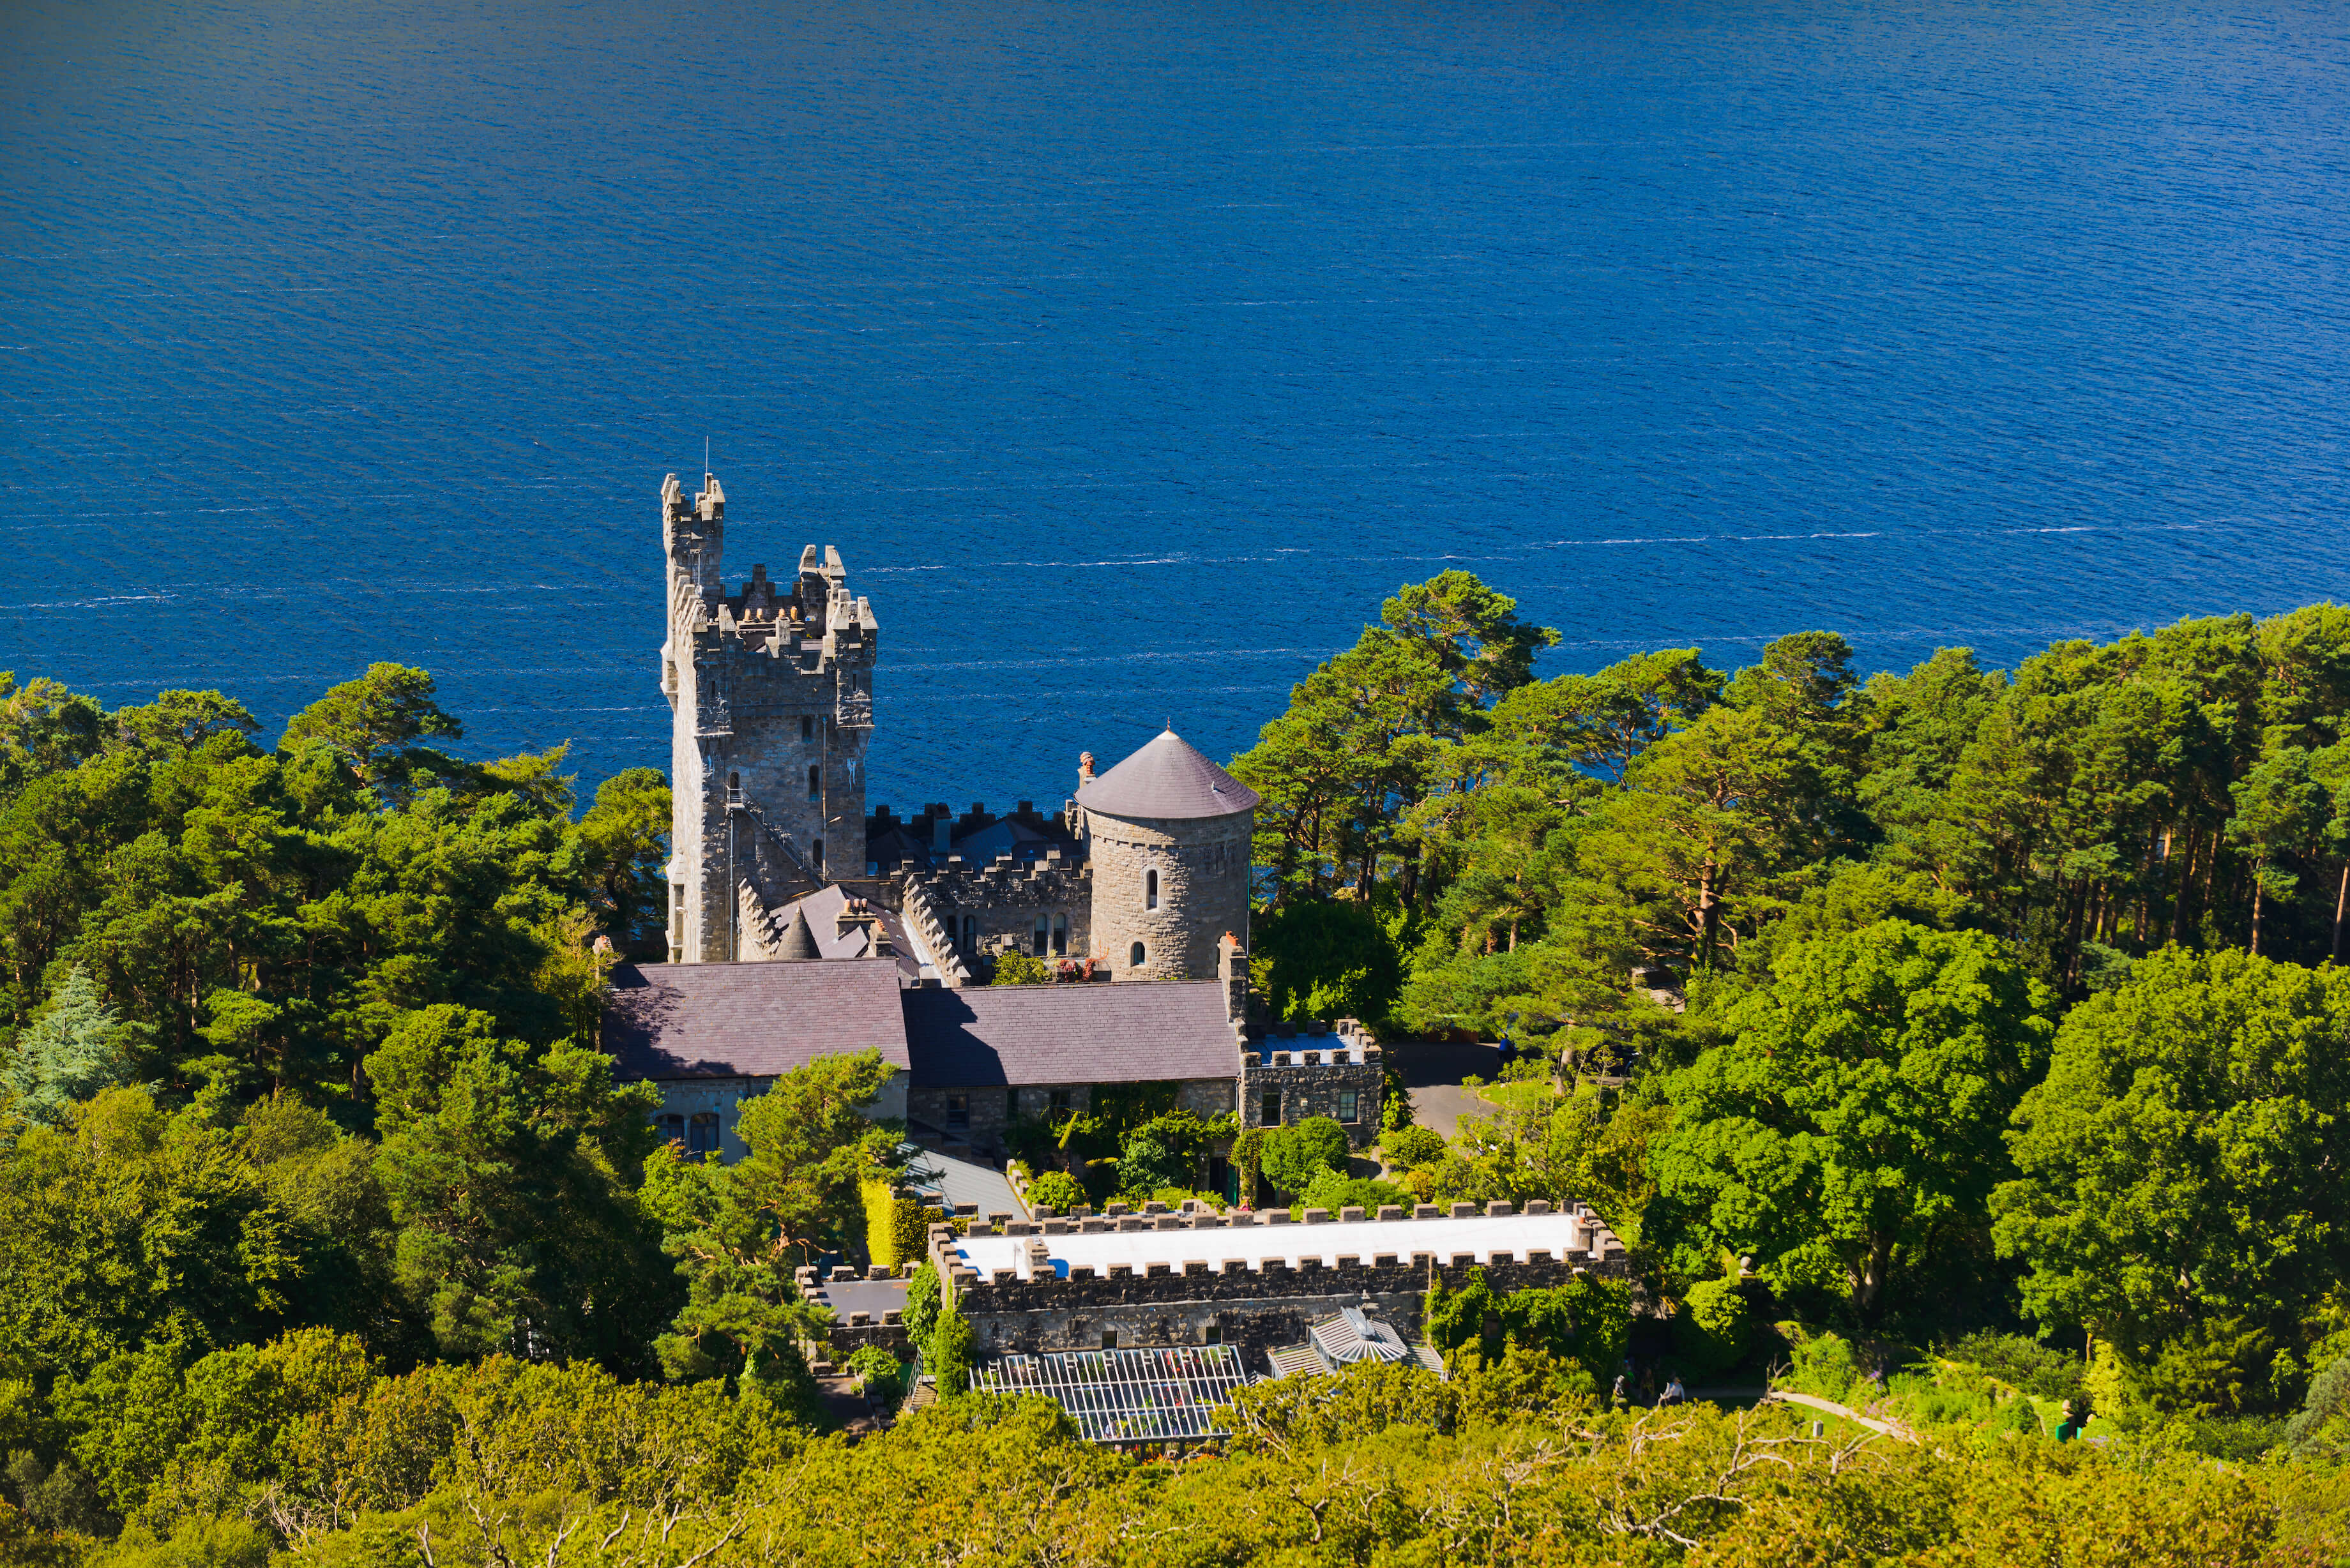 Glenveagh Castle, once a hunting lodge, is situated in the gorgeous Glenveagh National Park.